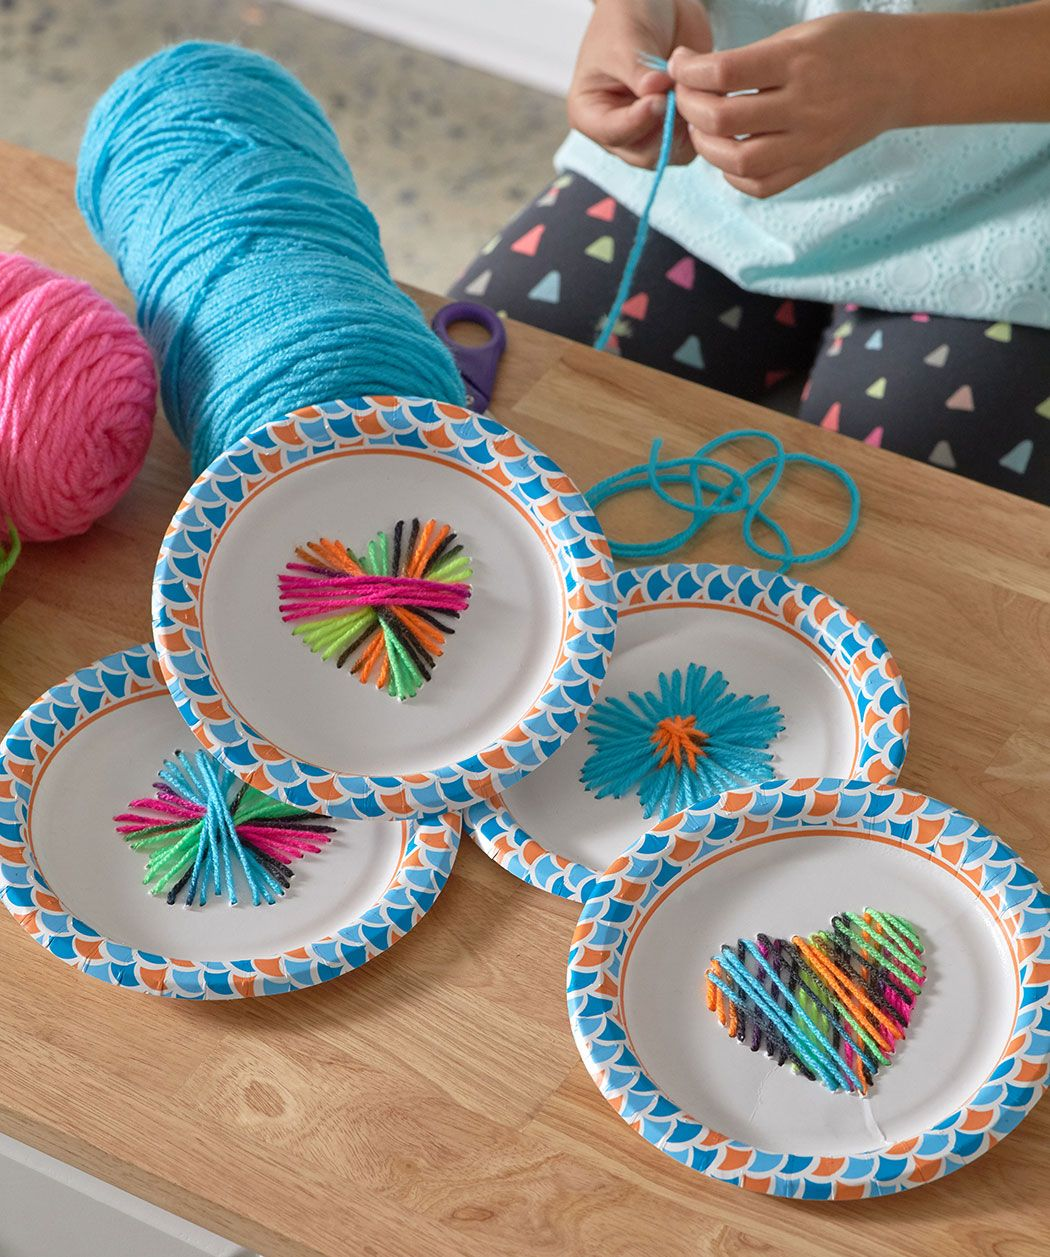 Paper Plate Weaving Free Craft Pattern Lm6162 For The Little Ones